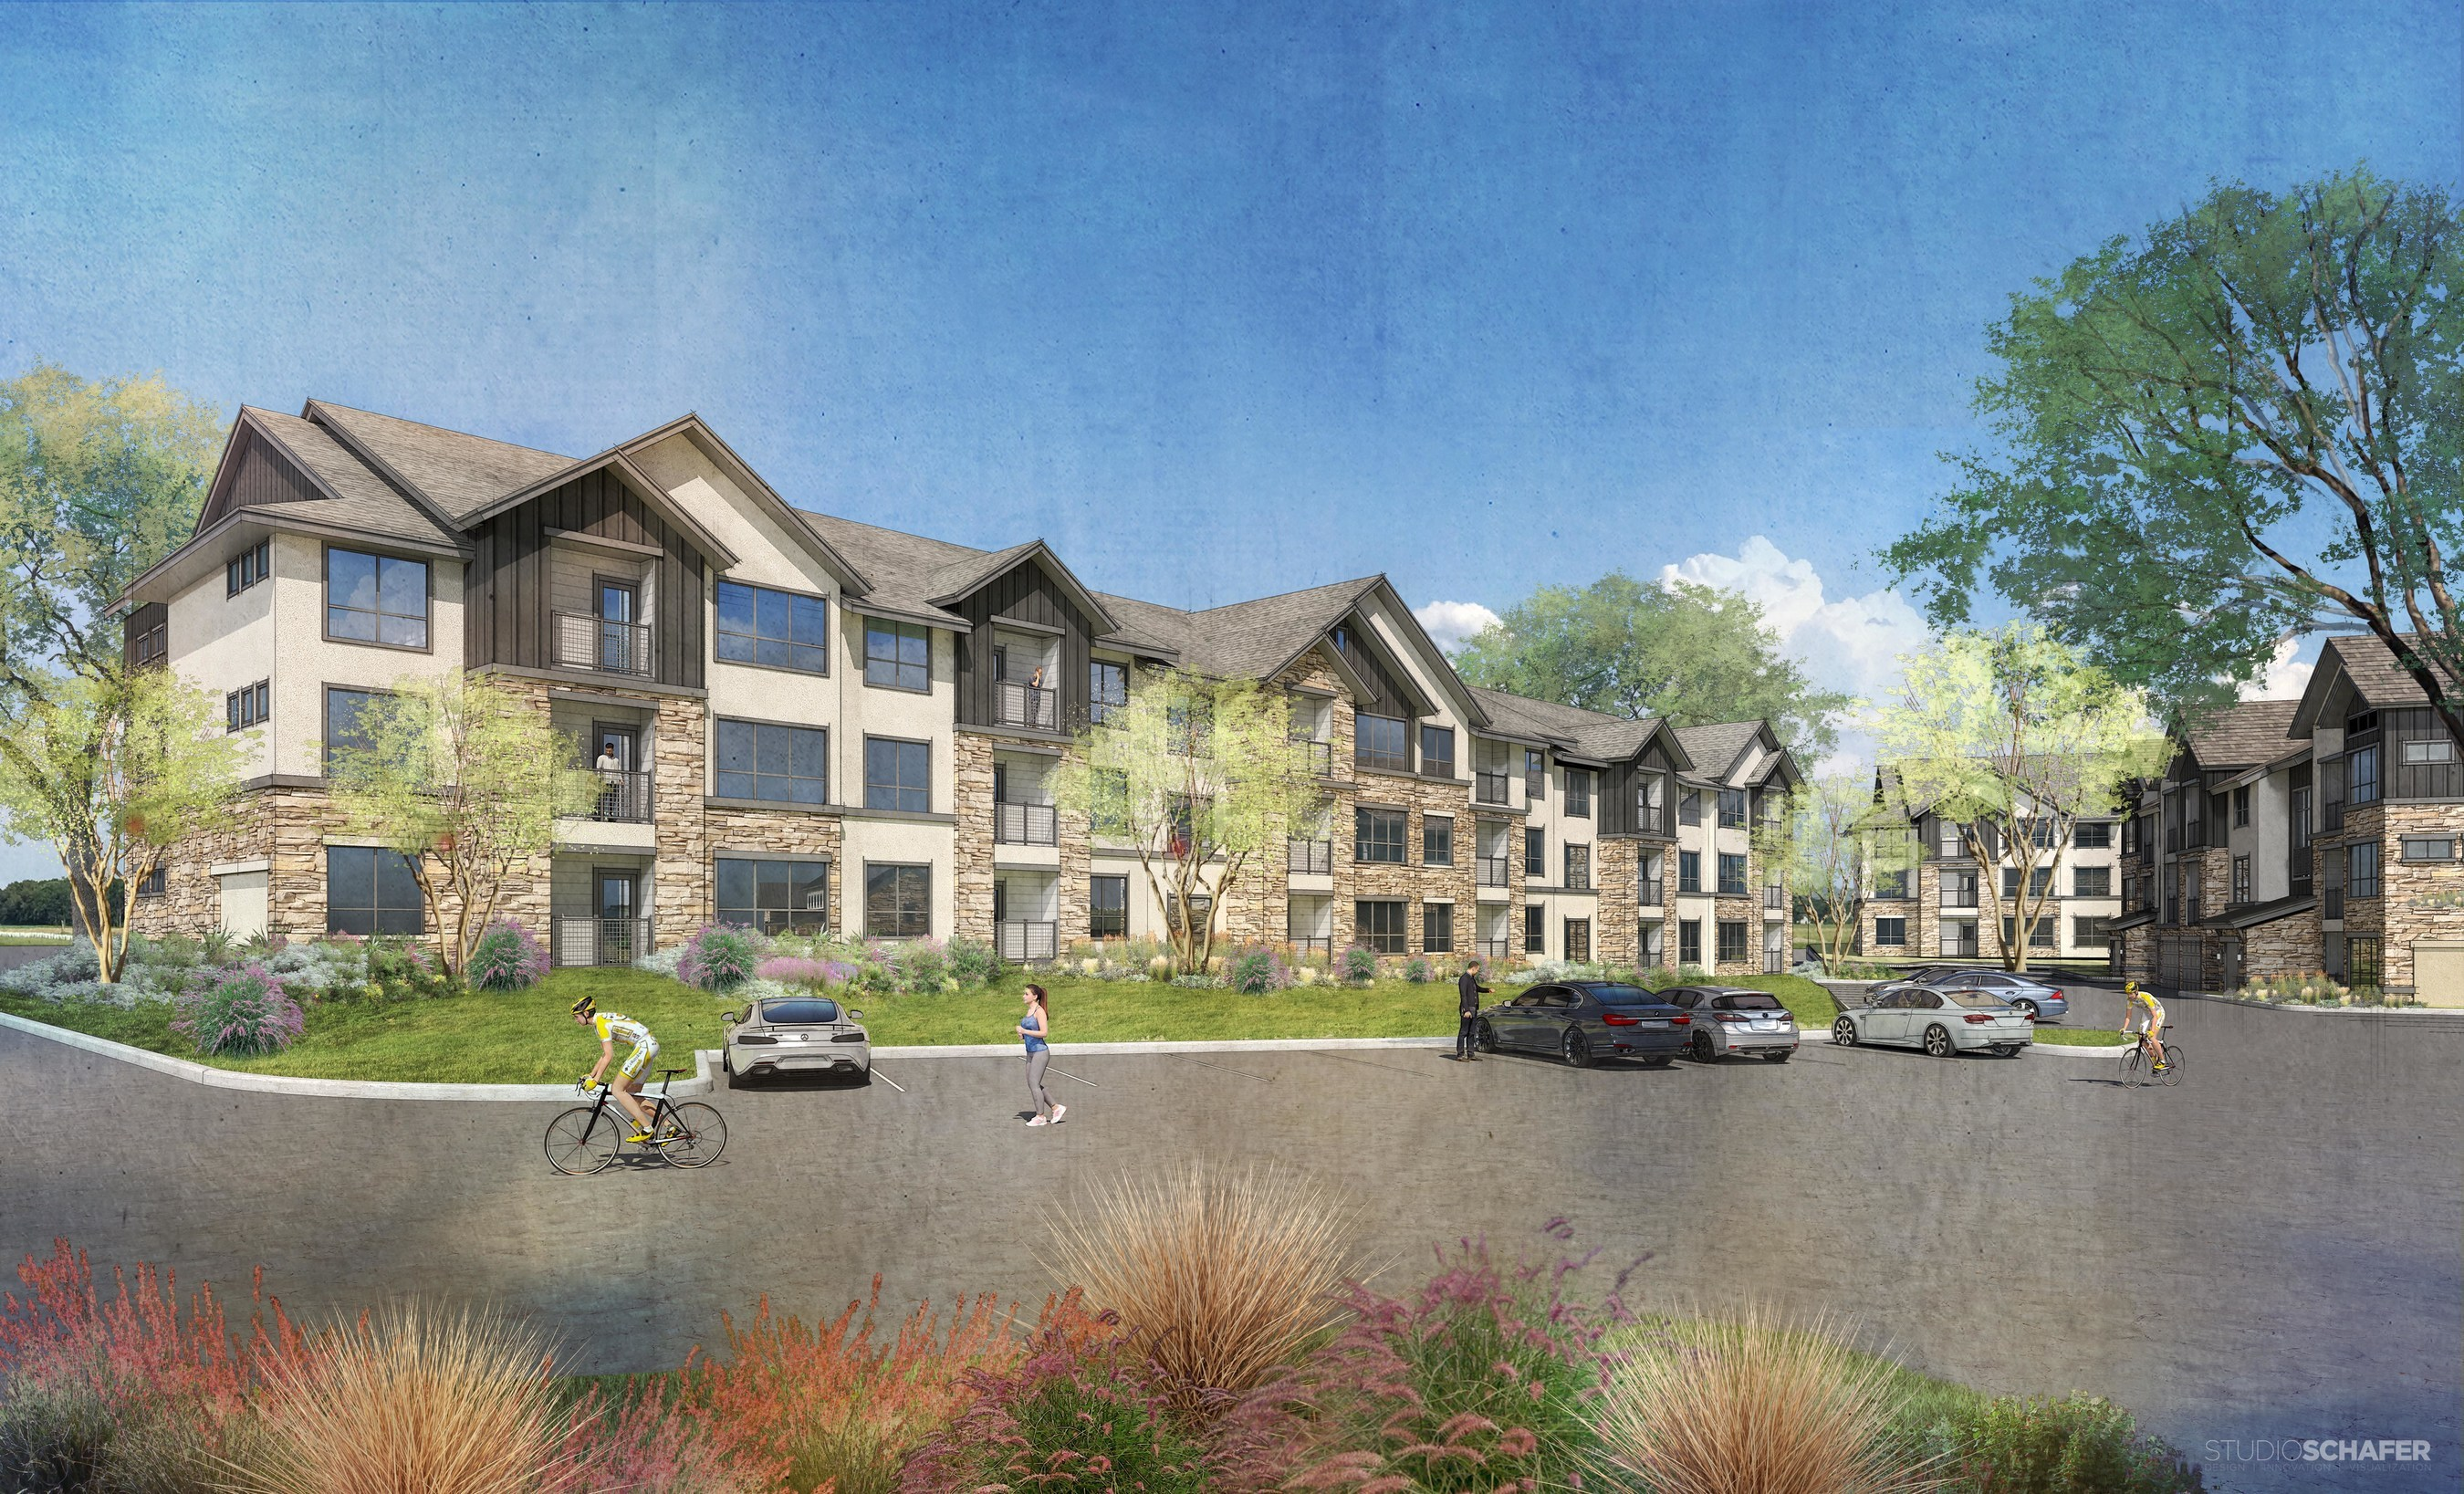 Embrey Partners Breaks Ground on New 296-Unit Luxury Apartment Community in San Antonio's Hill Country Village